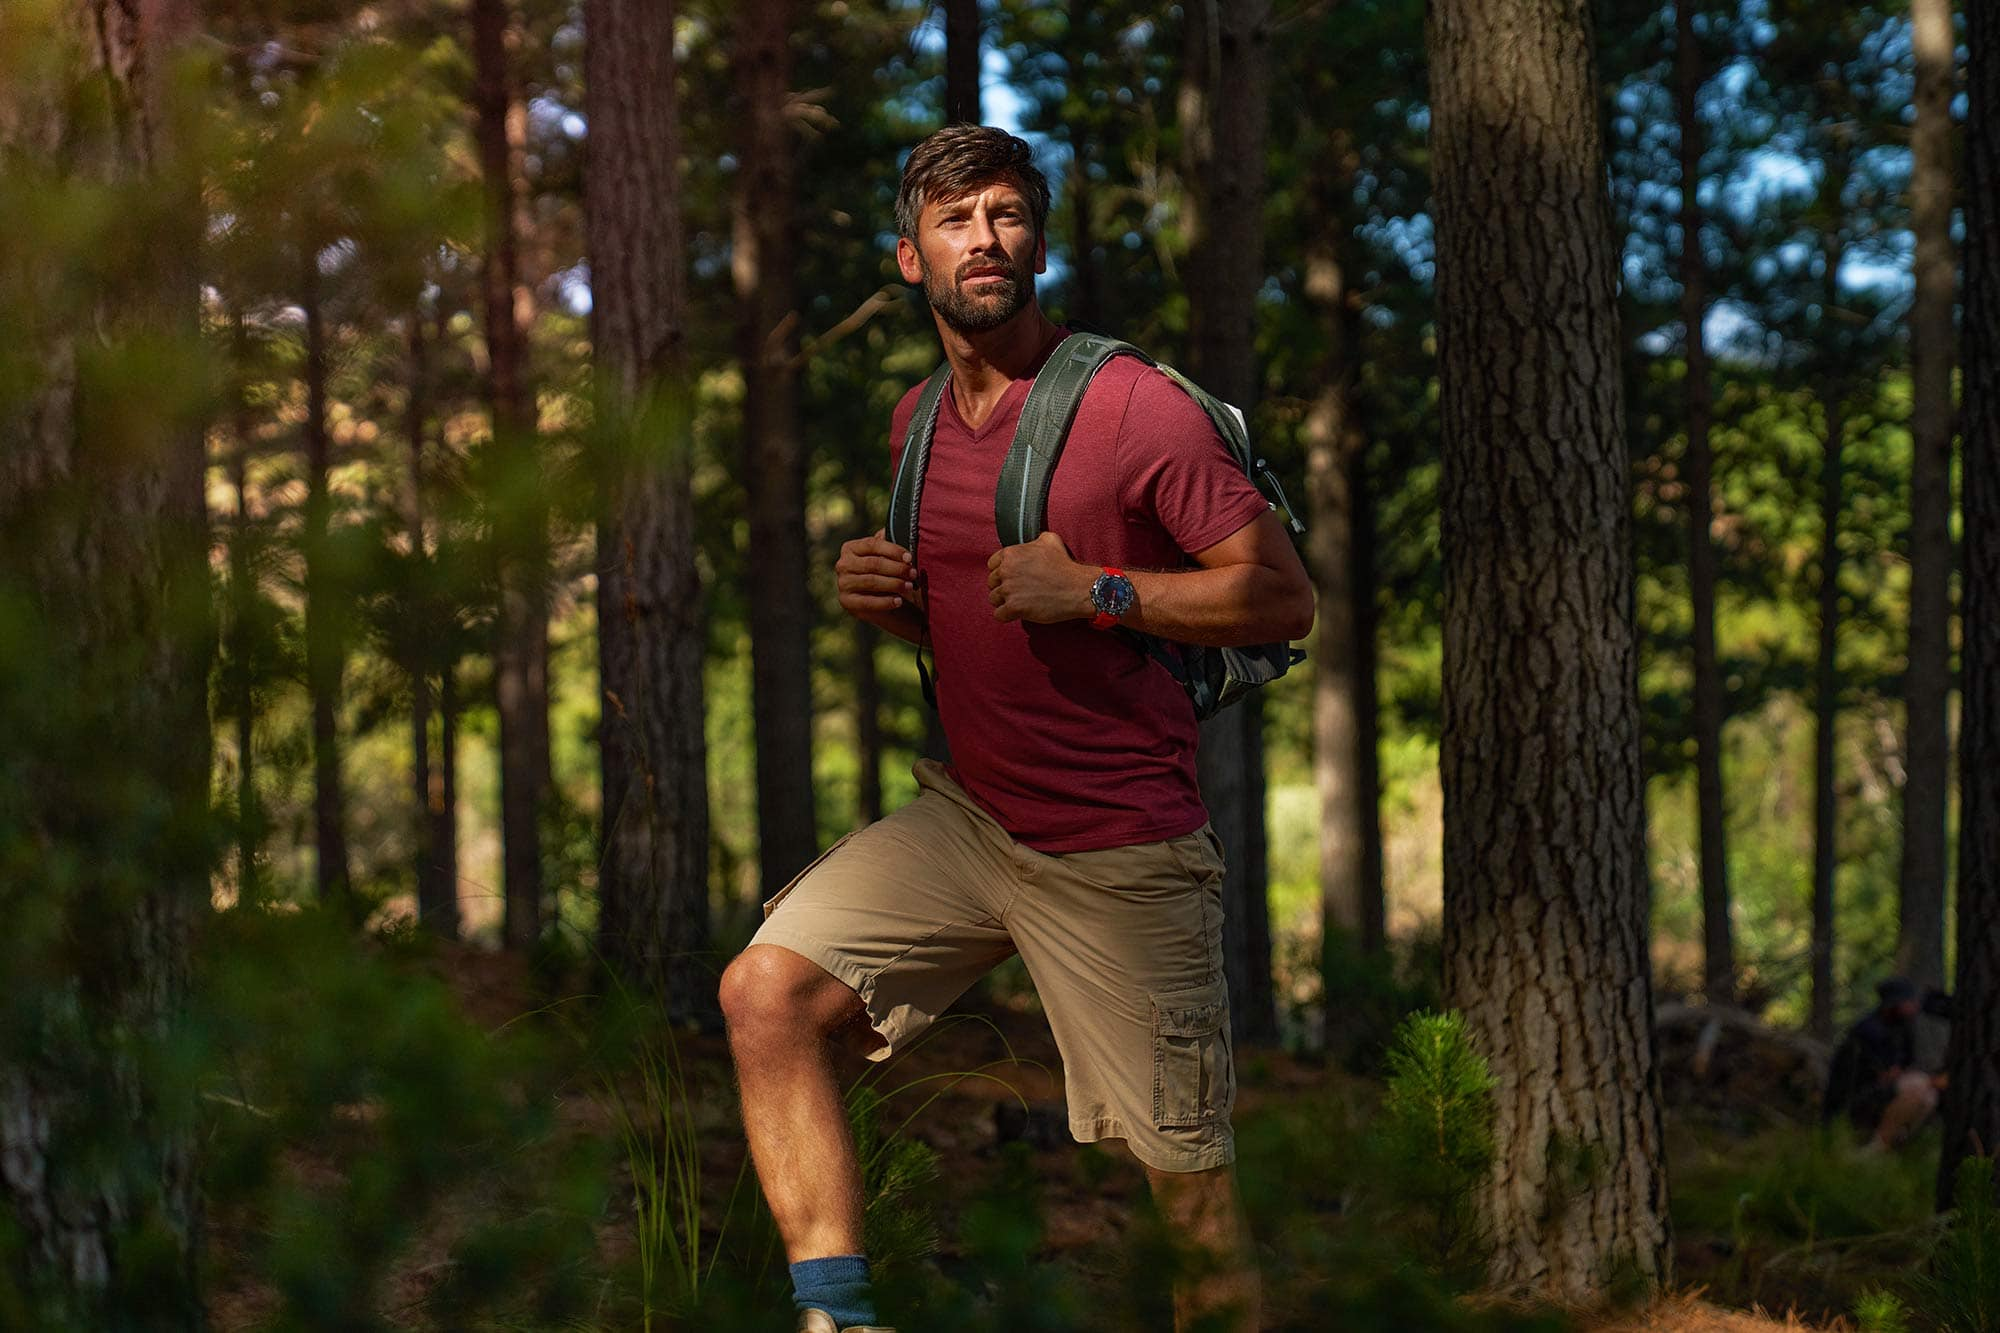 hiking & lifestyle product photography for tissot t-touch print campaign by smith and daniels